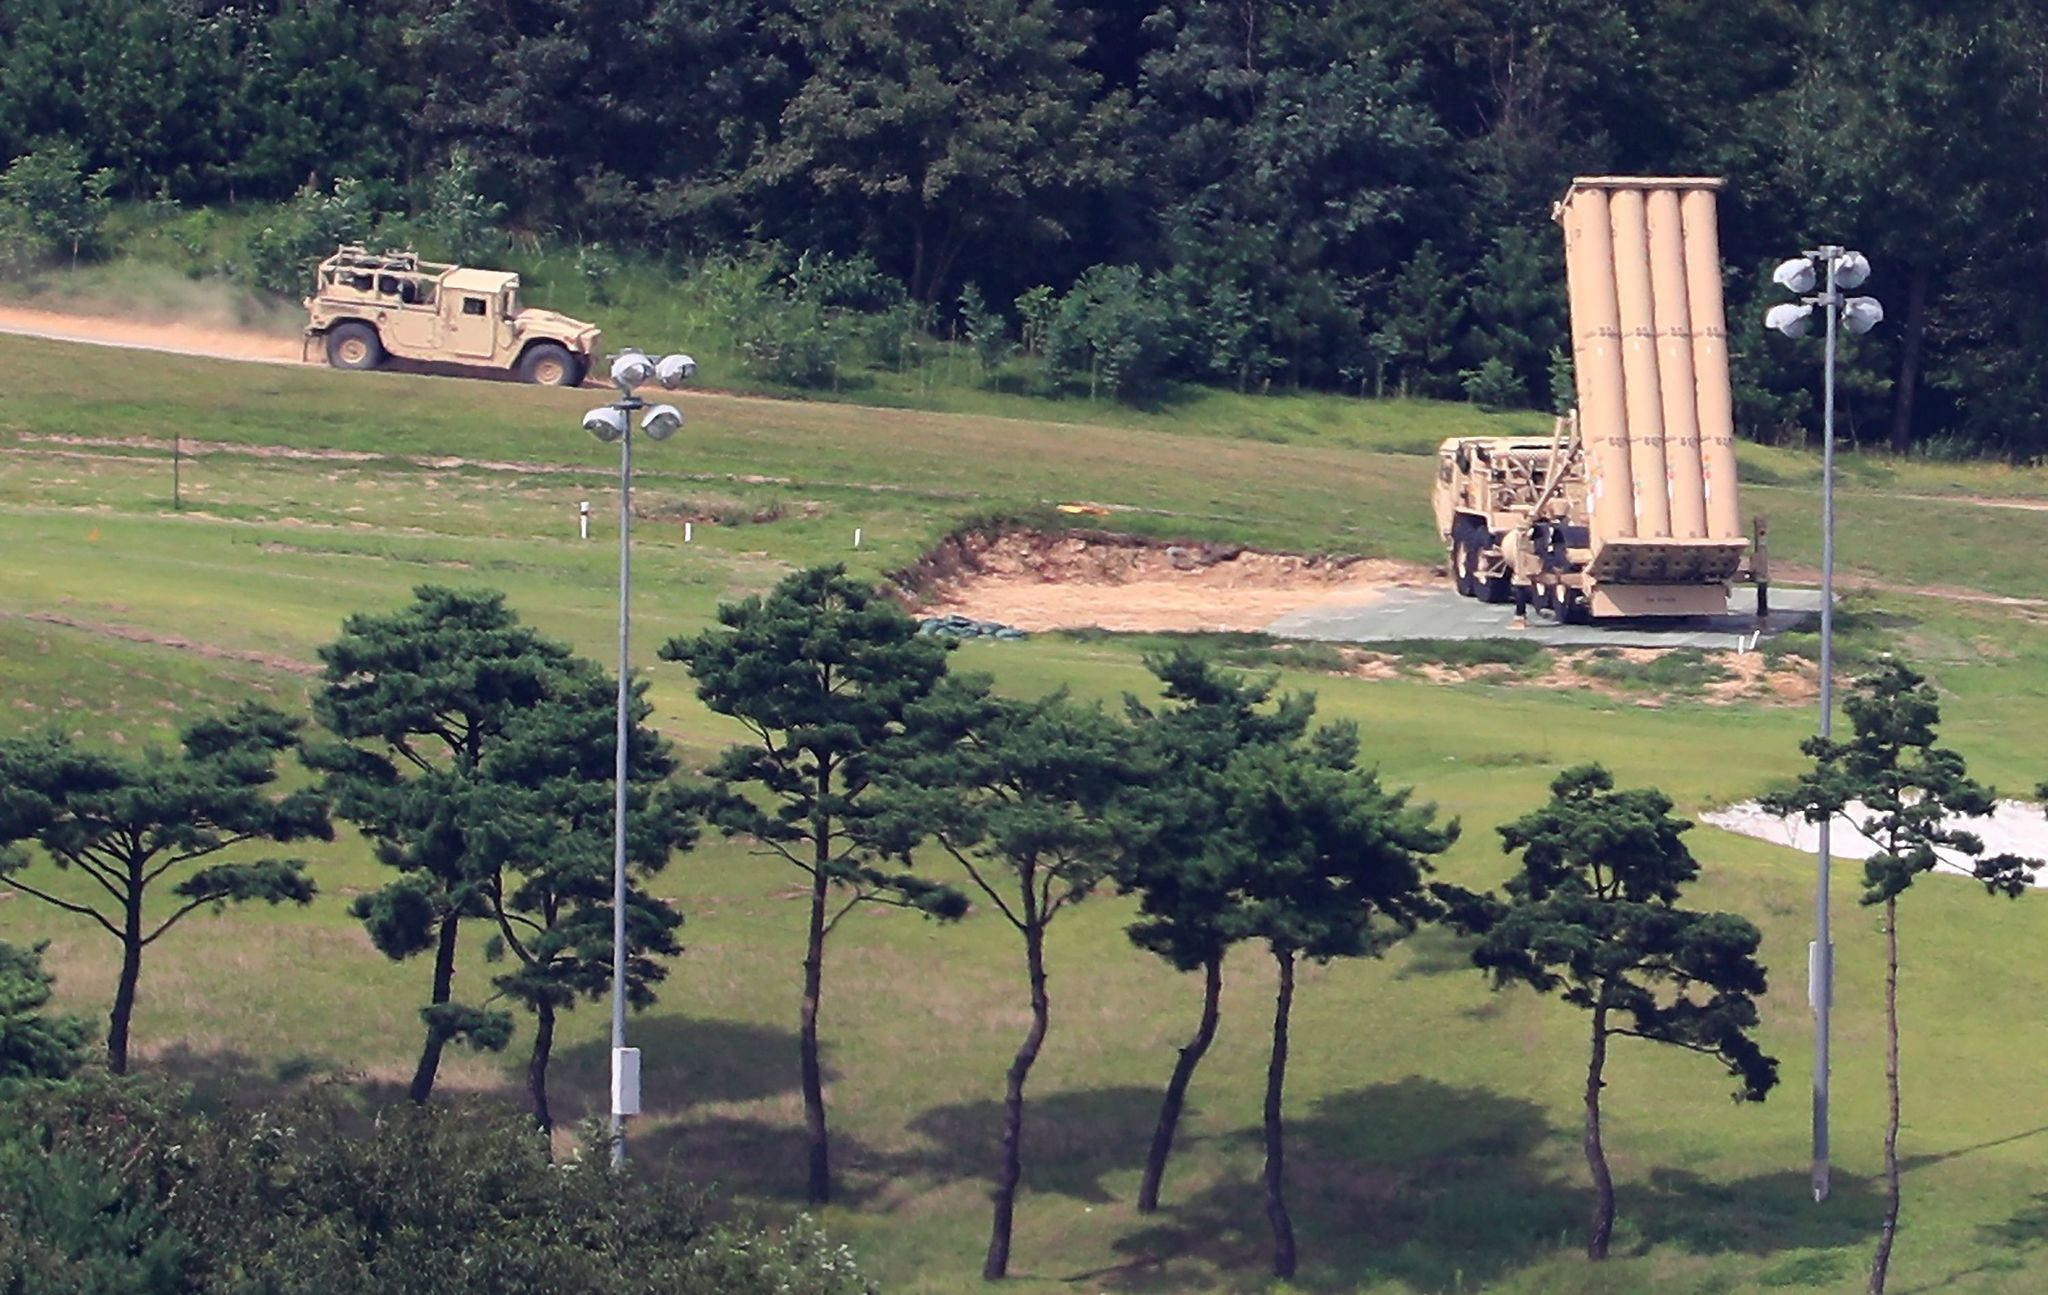 Chinese Fighter Violates South Korea's Air Defense Identification Zone